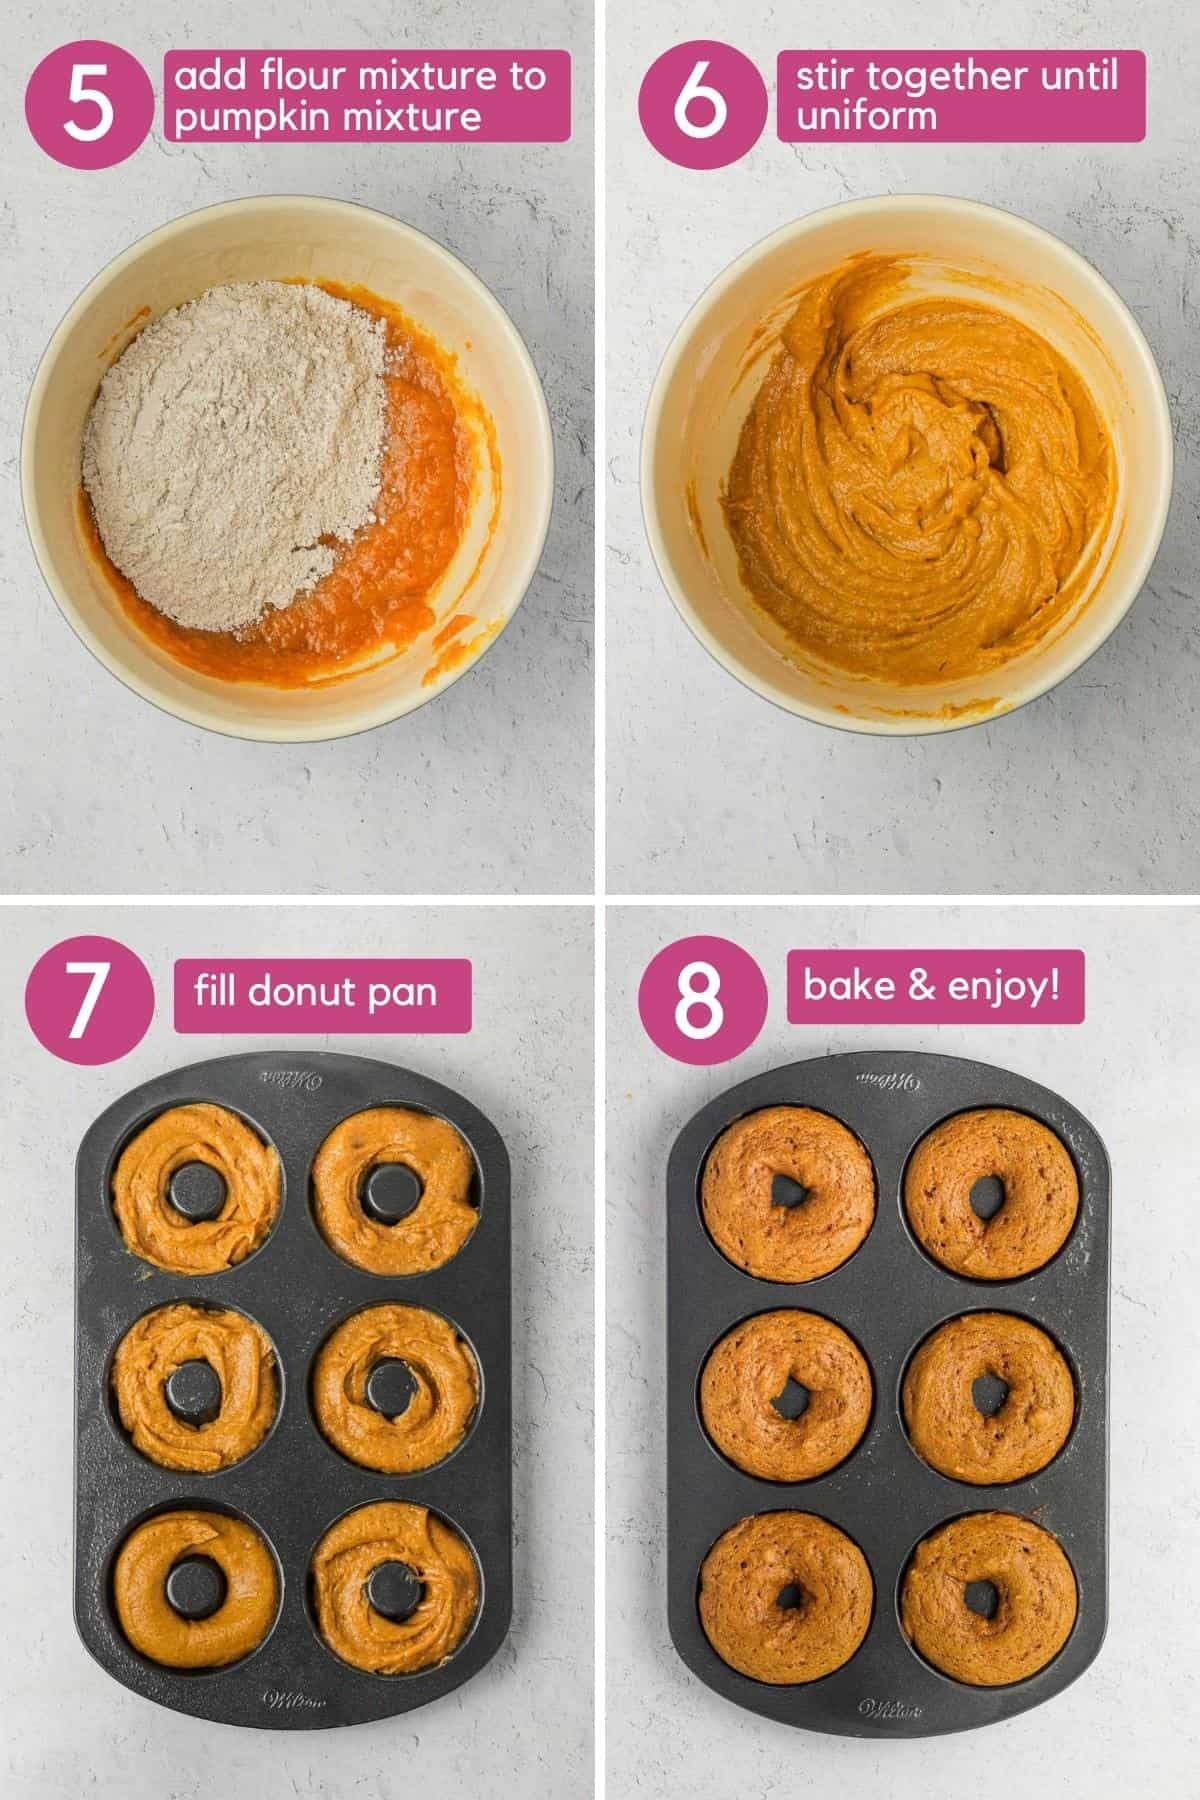 Putting baked pumpkin donut batter into donut pan to bake.